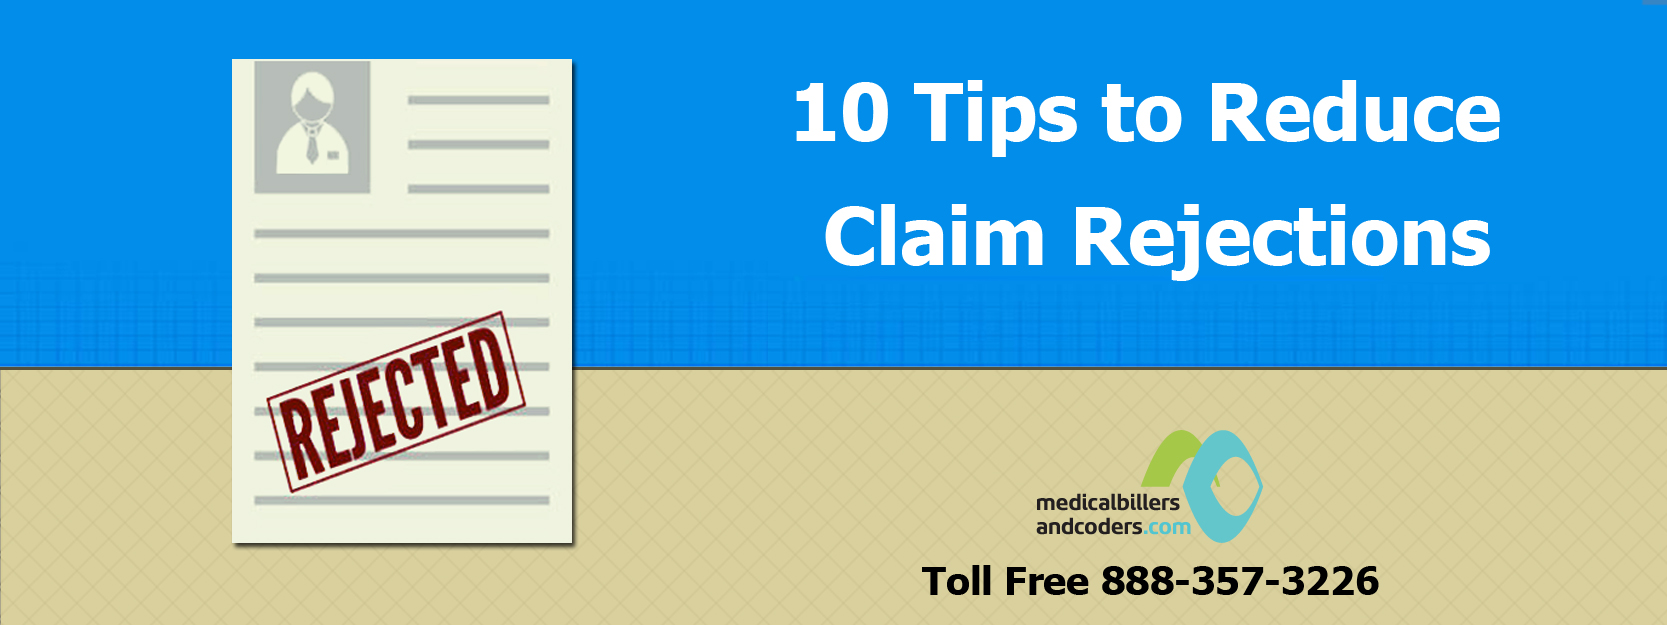 10 Tips to Reduce Claim Rejections